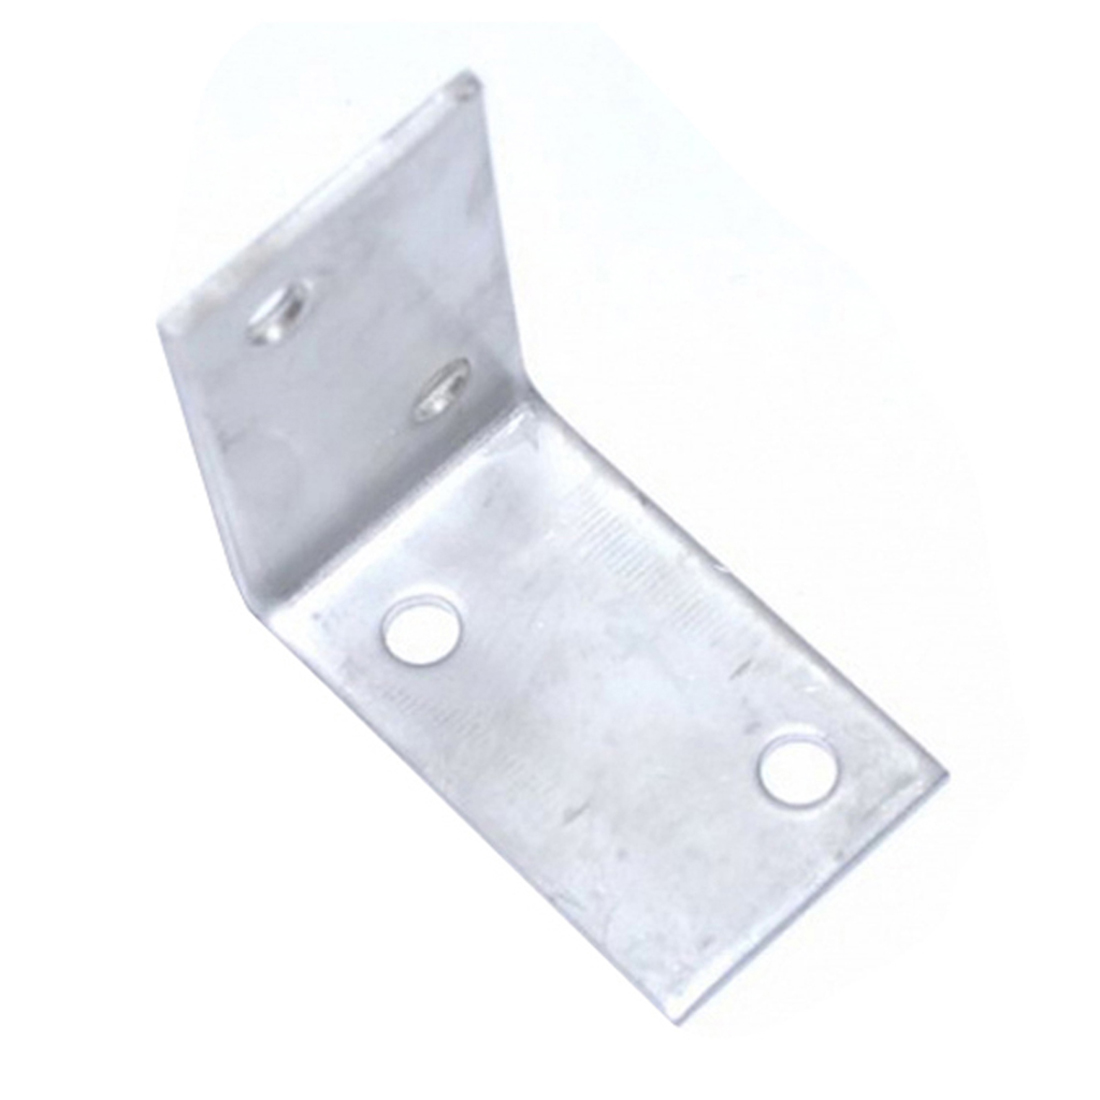 Angle Bracket M6 40 x 40 x 40 x 3mm 304 Stainless Steel BANS4040E040R